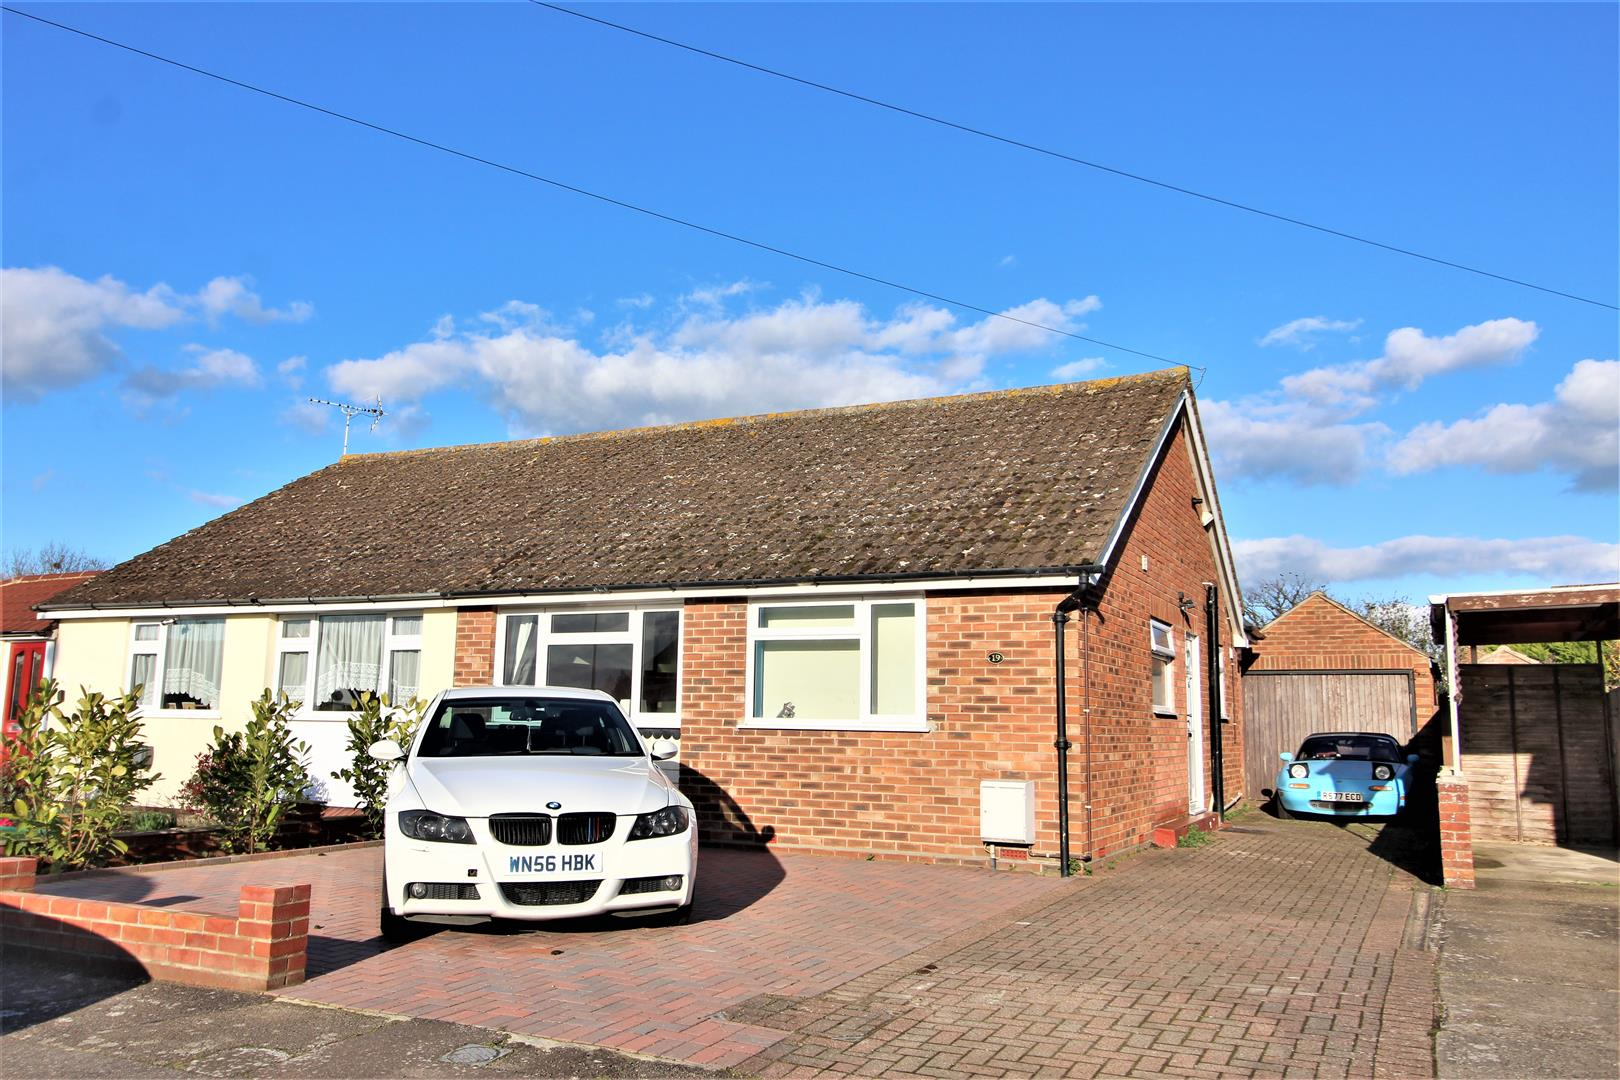 Leys Drive, Little Clacton, Essex, CO16 9RE